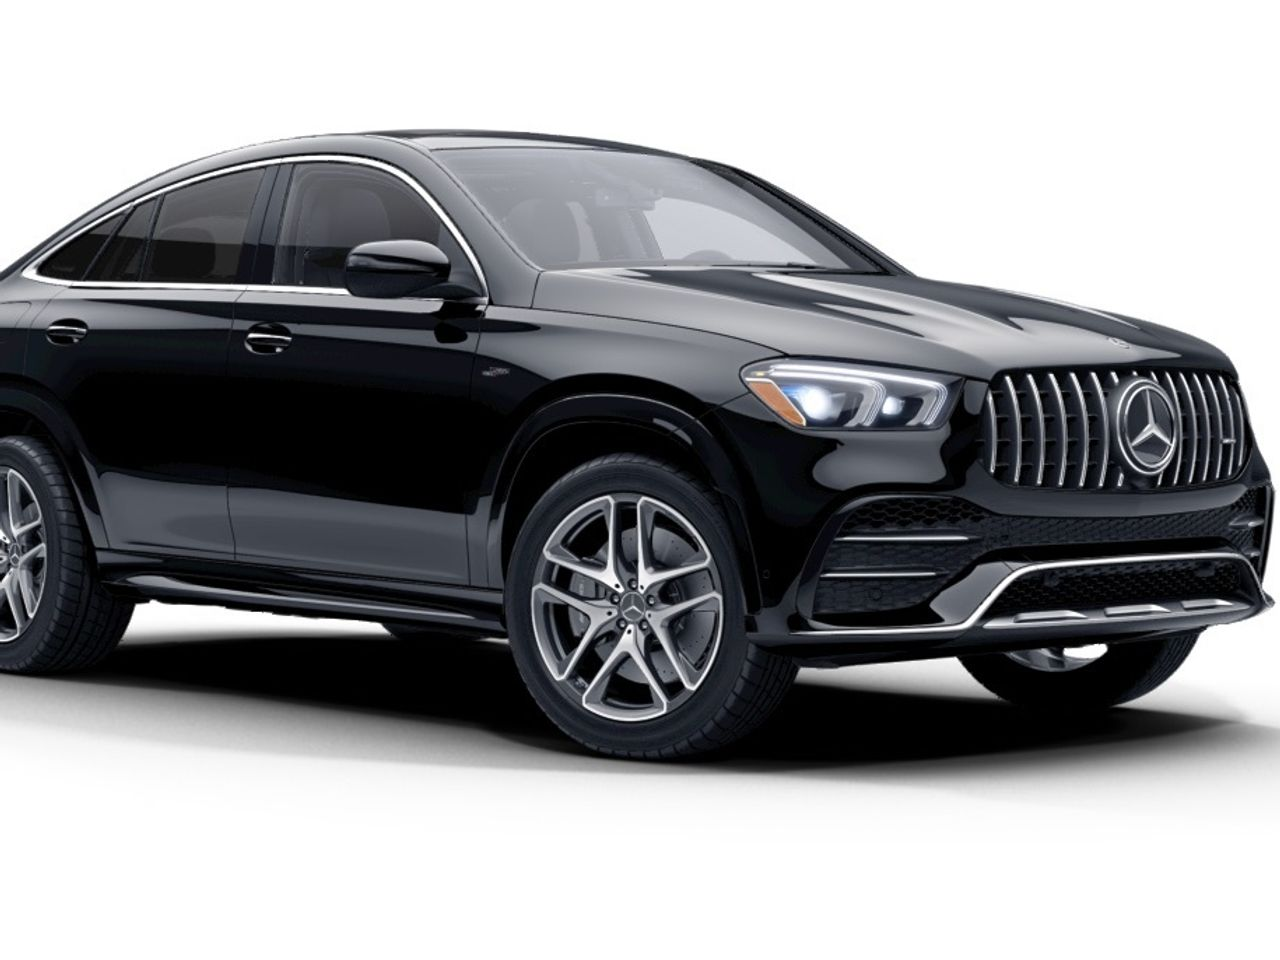 Review The 2021 Mercedes Amg Gle Coupe Has Sports Car Manners Suv Like Practicality Marketwatch